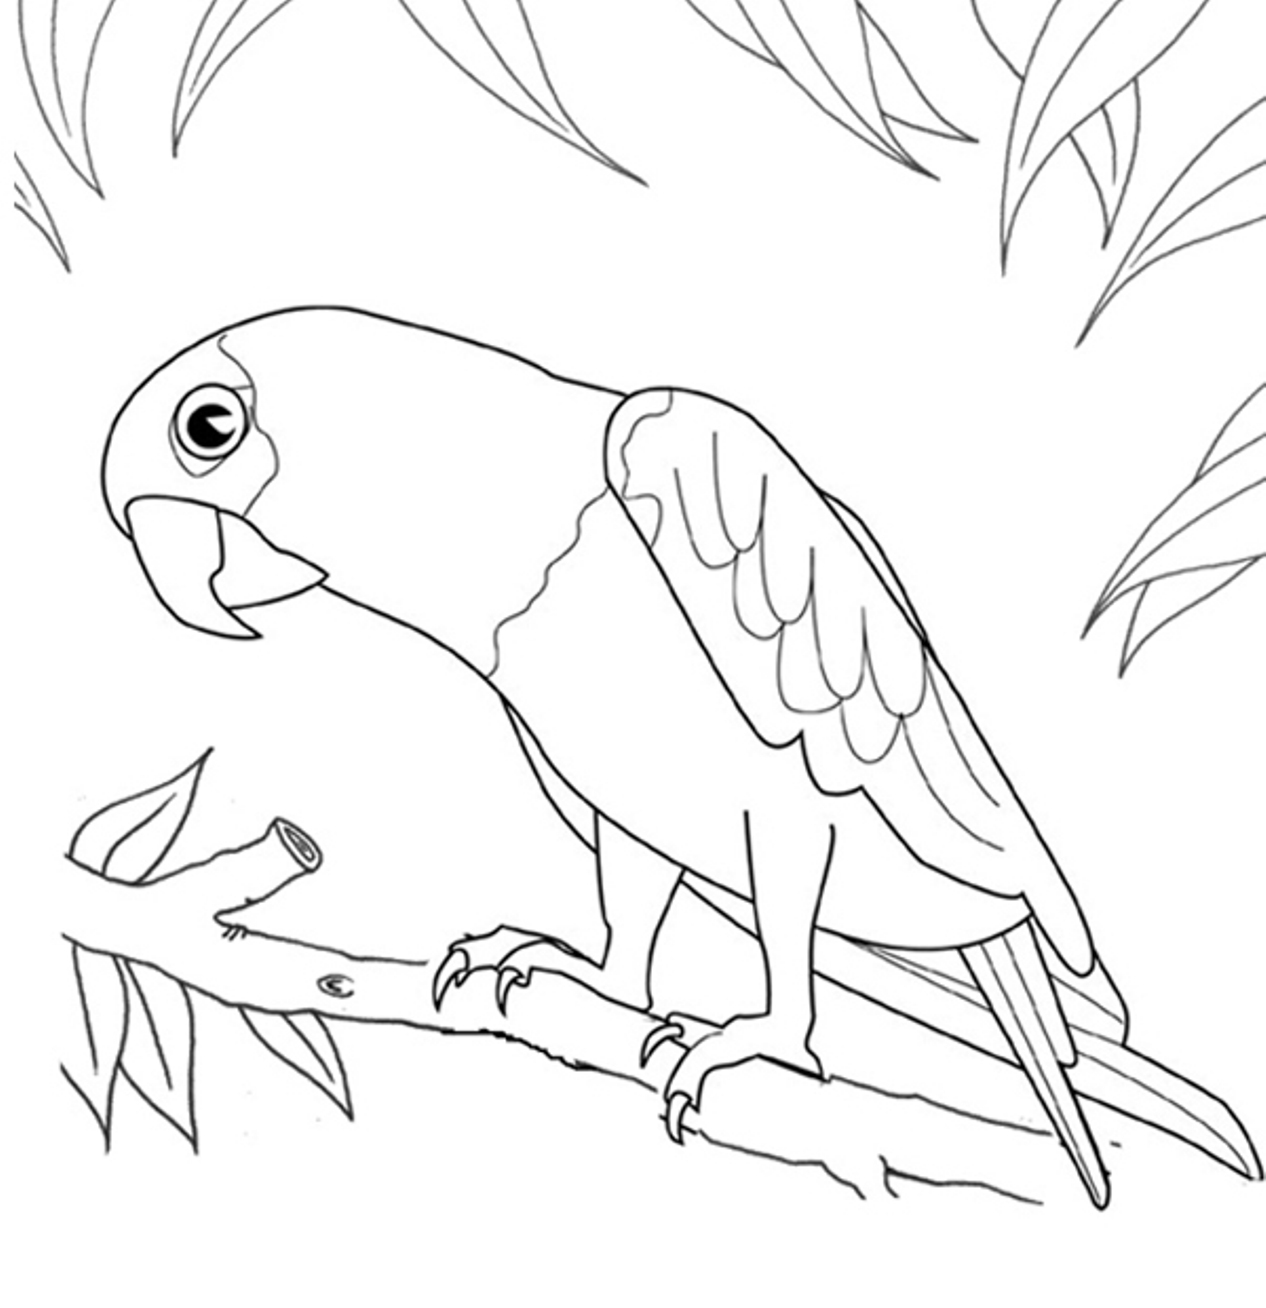 Parrot Line Drawing At Getdrawings Free For Personal Use